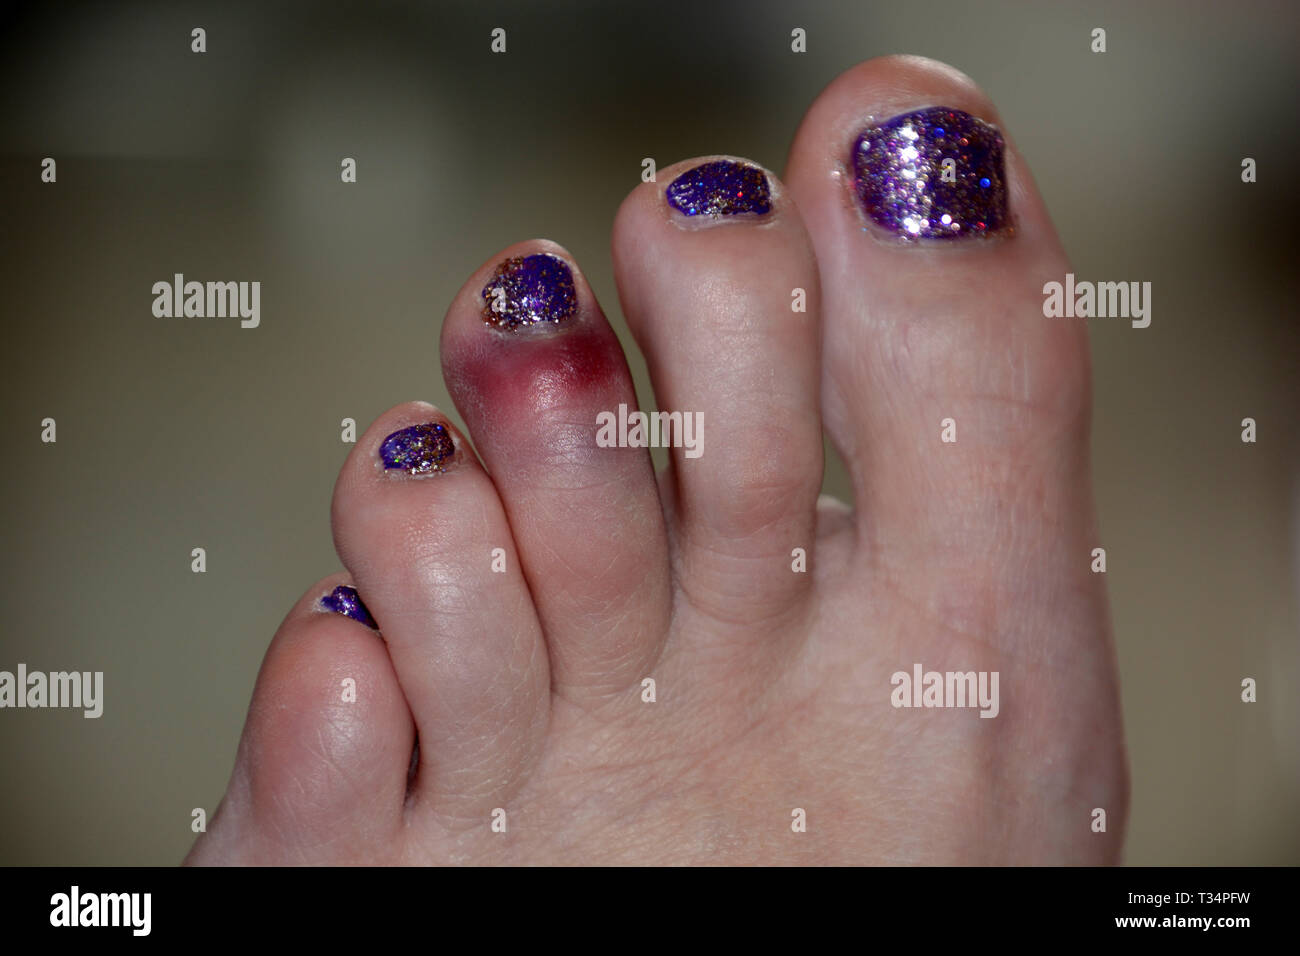 black and blue bruise on the left foot of the middle toe of a female after a painful accident, unsightly bruise of glitter nail polish toe after sport Stock Photo